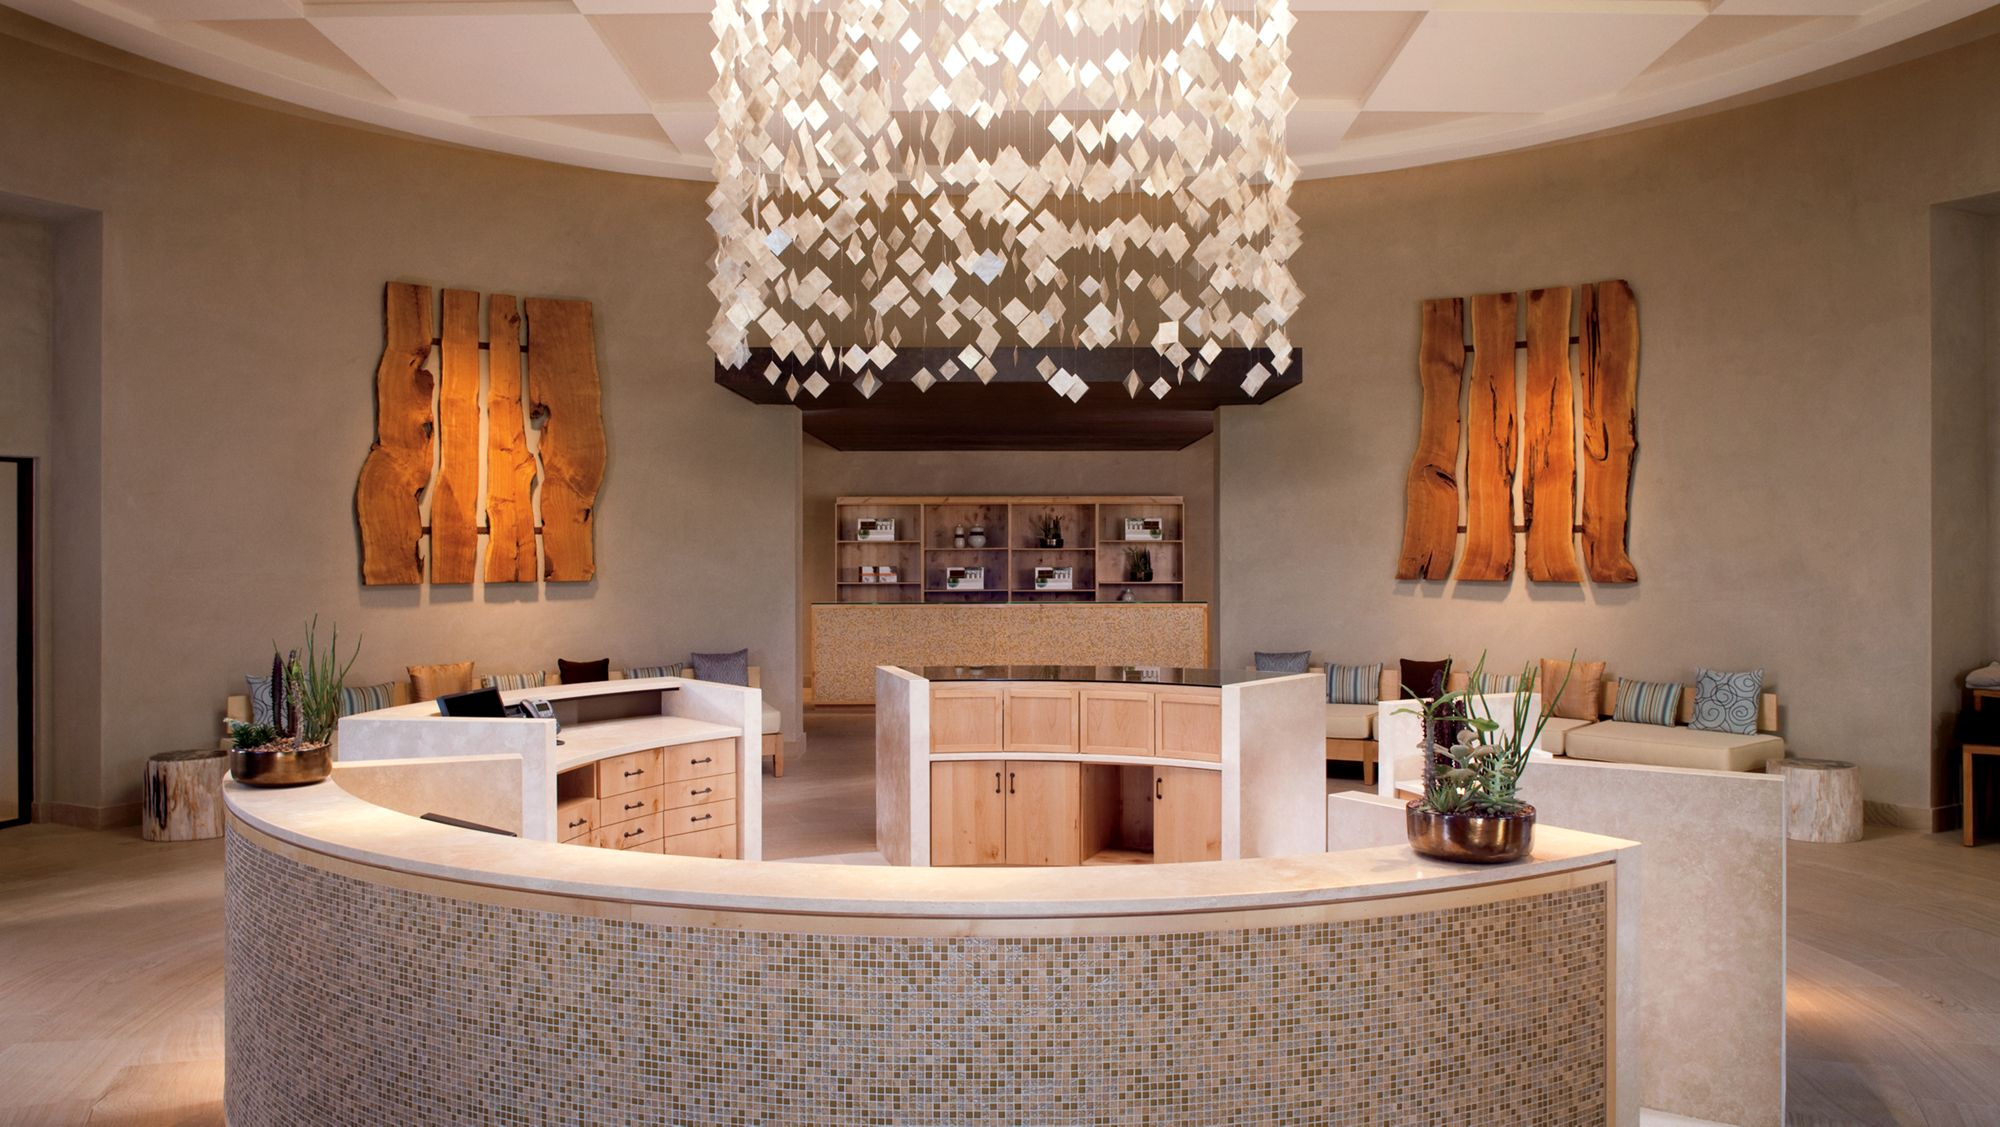 The elegant reception area and desk of The Ritz-Carlton Spa at the resort